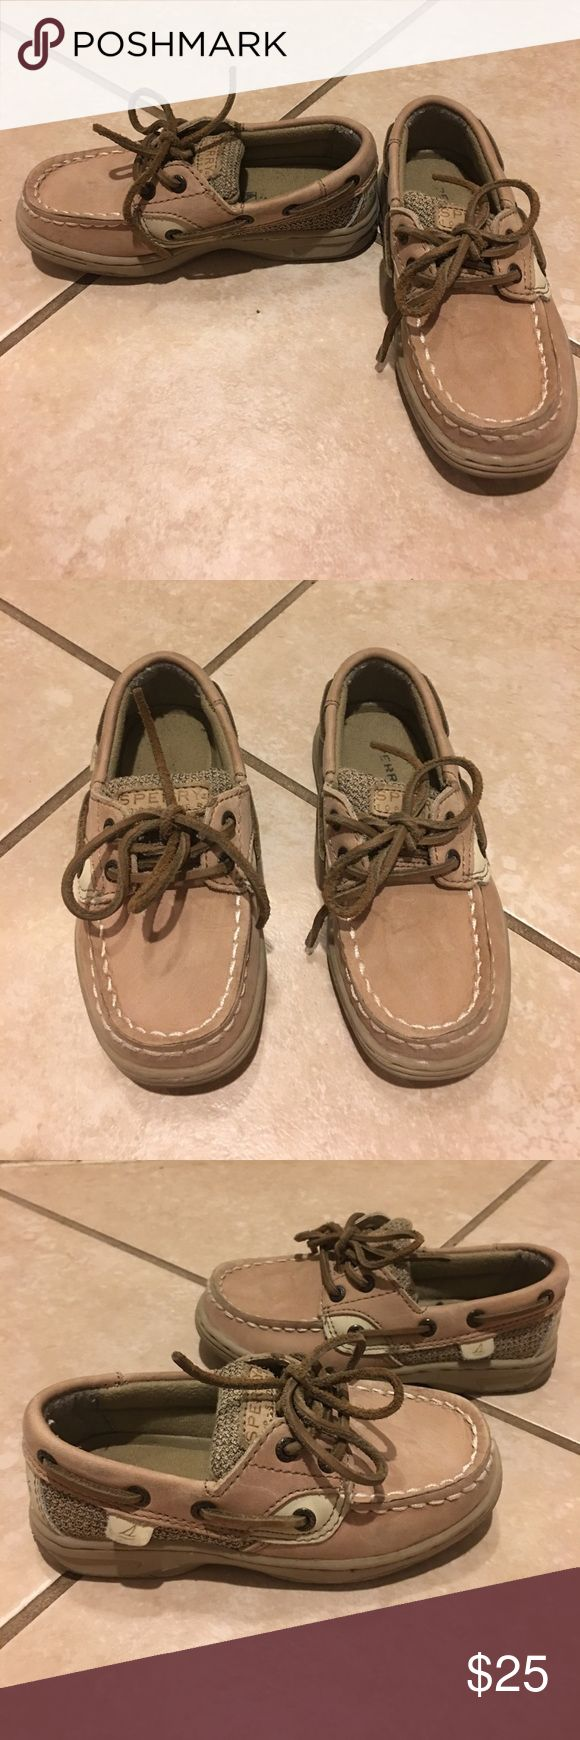 EUC Toddler Sperry Topsiders sz. 9 Toddler Sperry Topsiders sz. 9 in excellent used condition. Worn 3 times. Sperry Top-Sider Shoes Dress Shoes